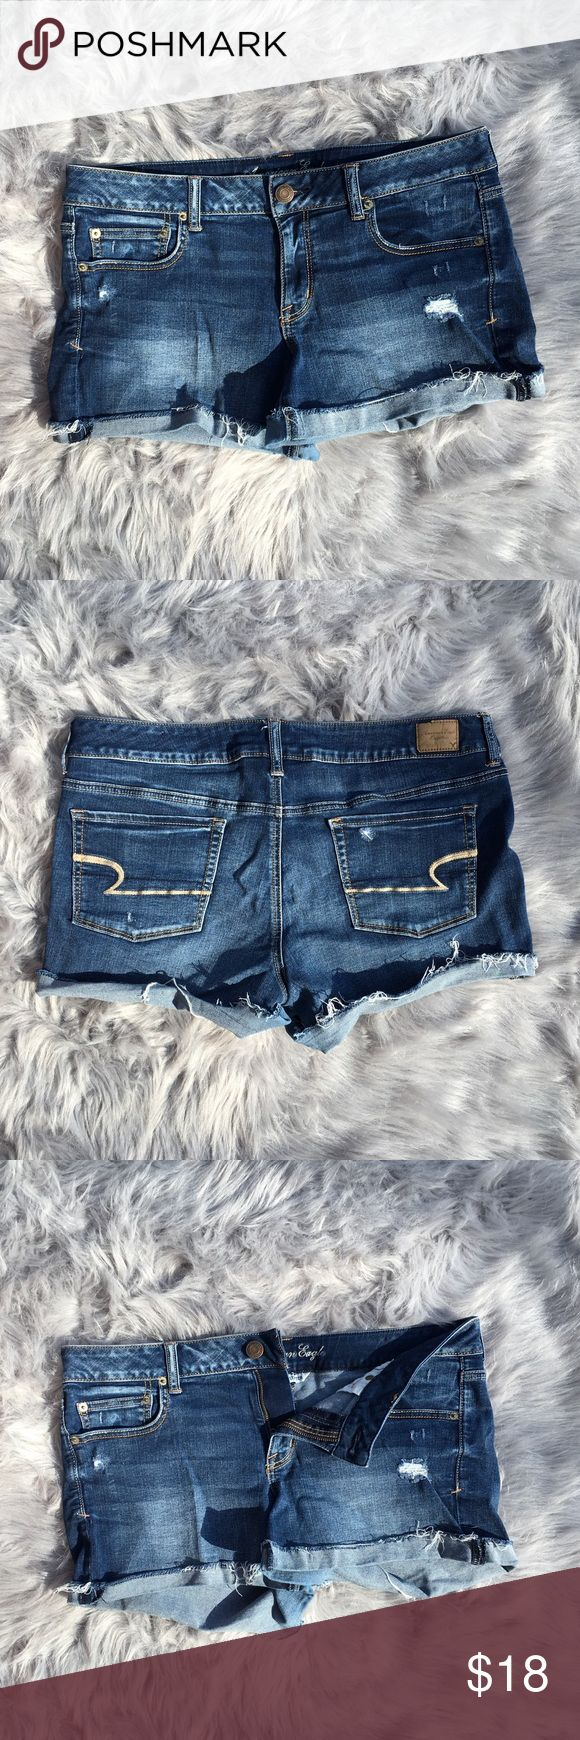 """American Eagle fringe jean shorts American Eagle """"Super Stretch"""" jean shorts. Only worn a handful of times. Very comfortable. Smoke free home. No stains. The bottom part is sewn on the sides and folded around the rest. Size:14. About 2.5 inch inseam. American Eagle Outfitters Shorts Jean Shorts"""